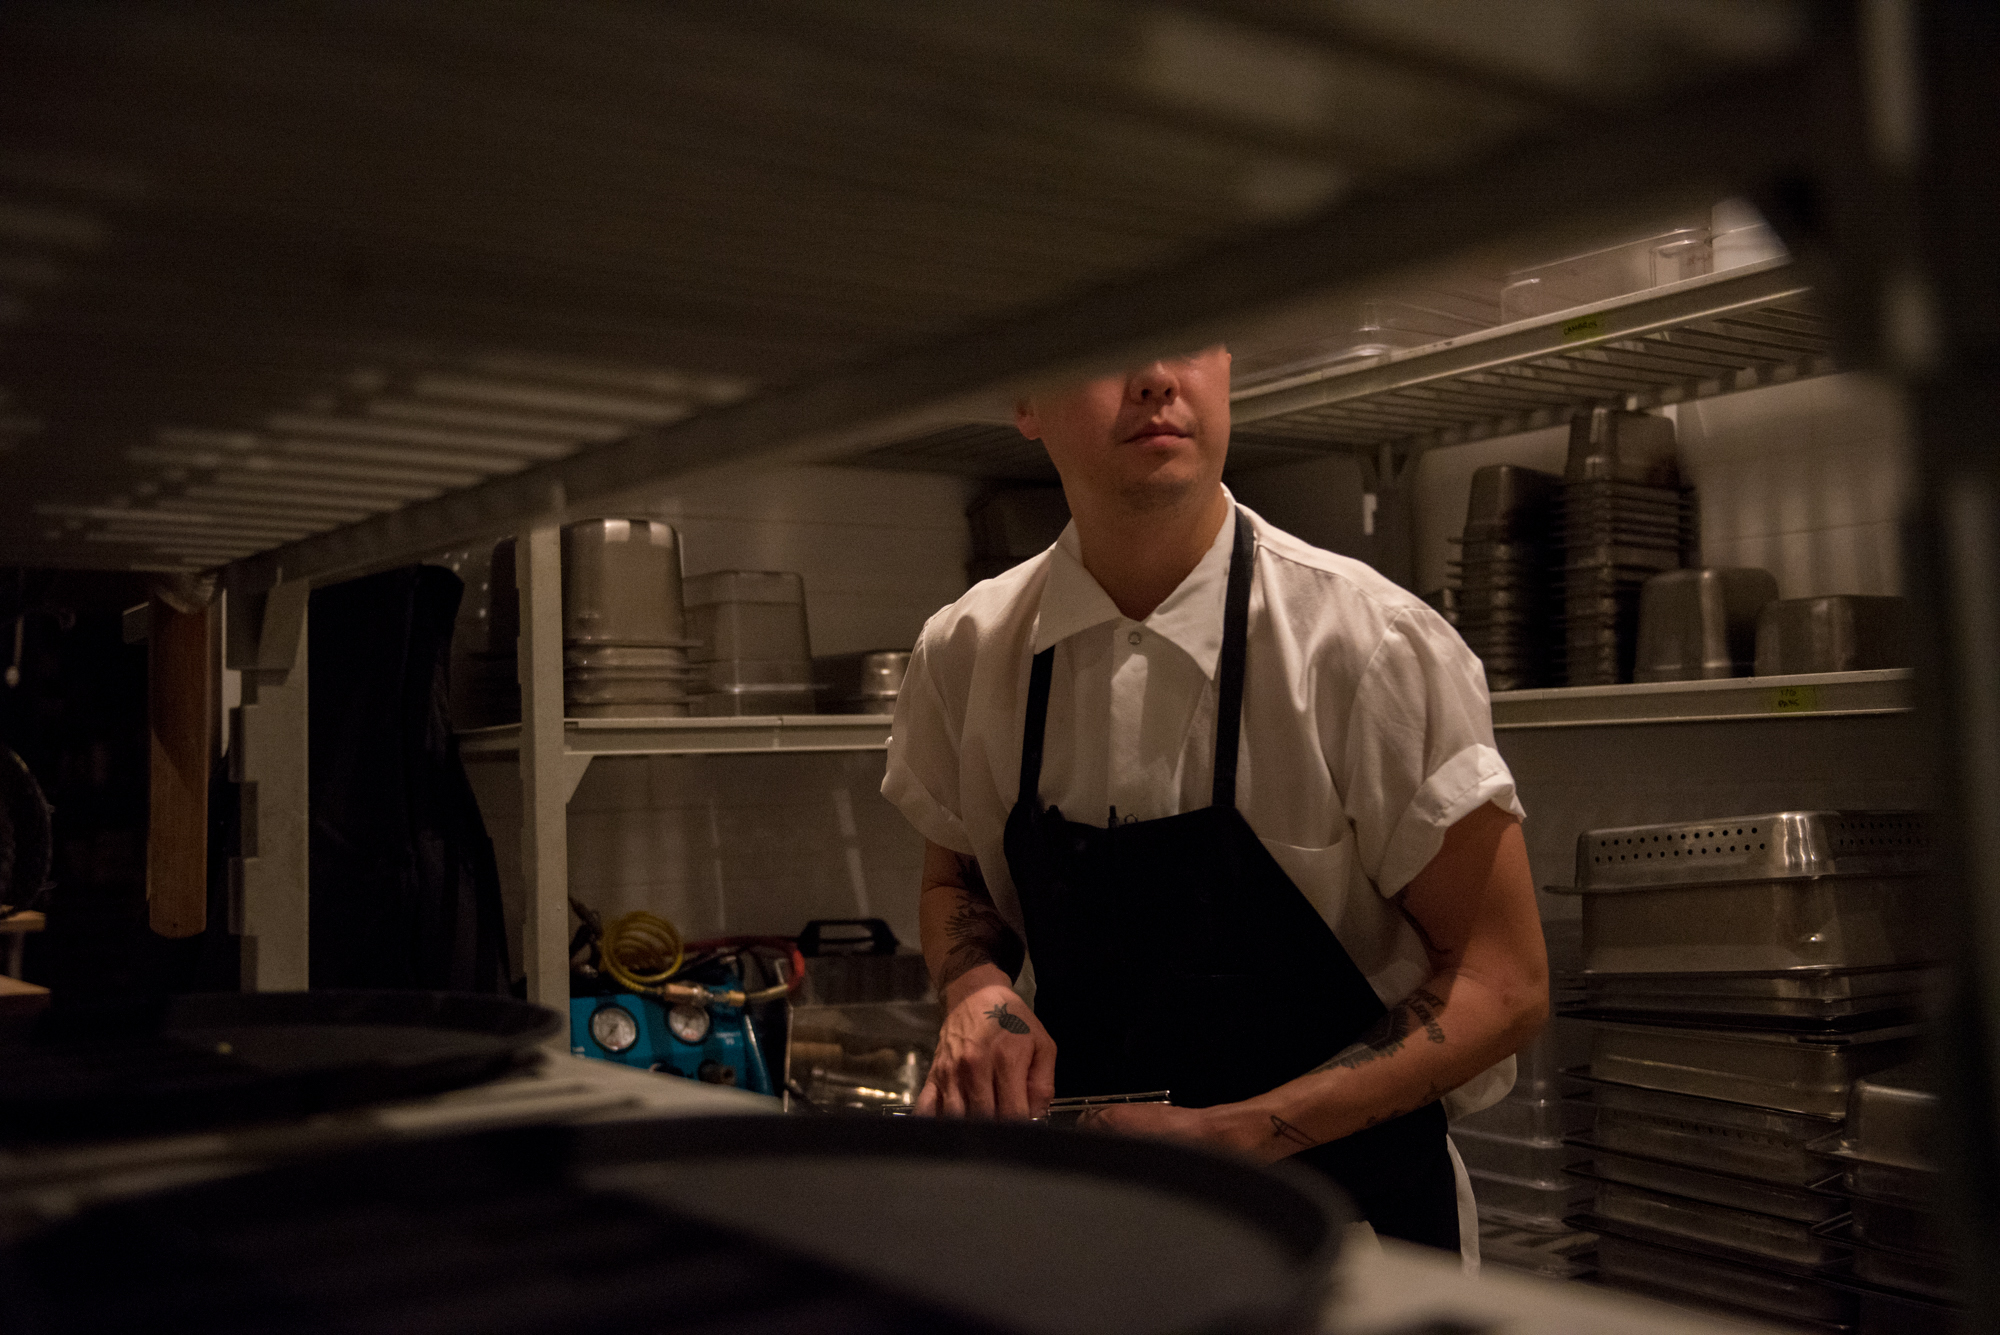 Eric Ehler works late in the kitchen at Mister Jiu's on Wednesday, March 21, 2018. | Rosa Furneaux, Special To The Chronicle